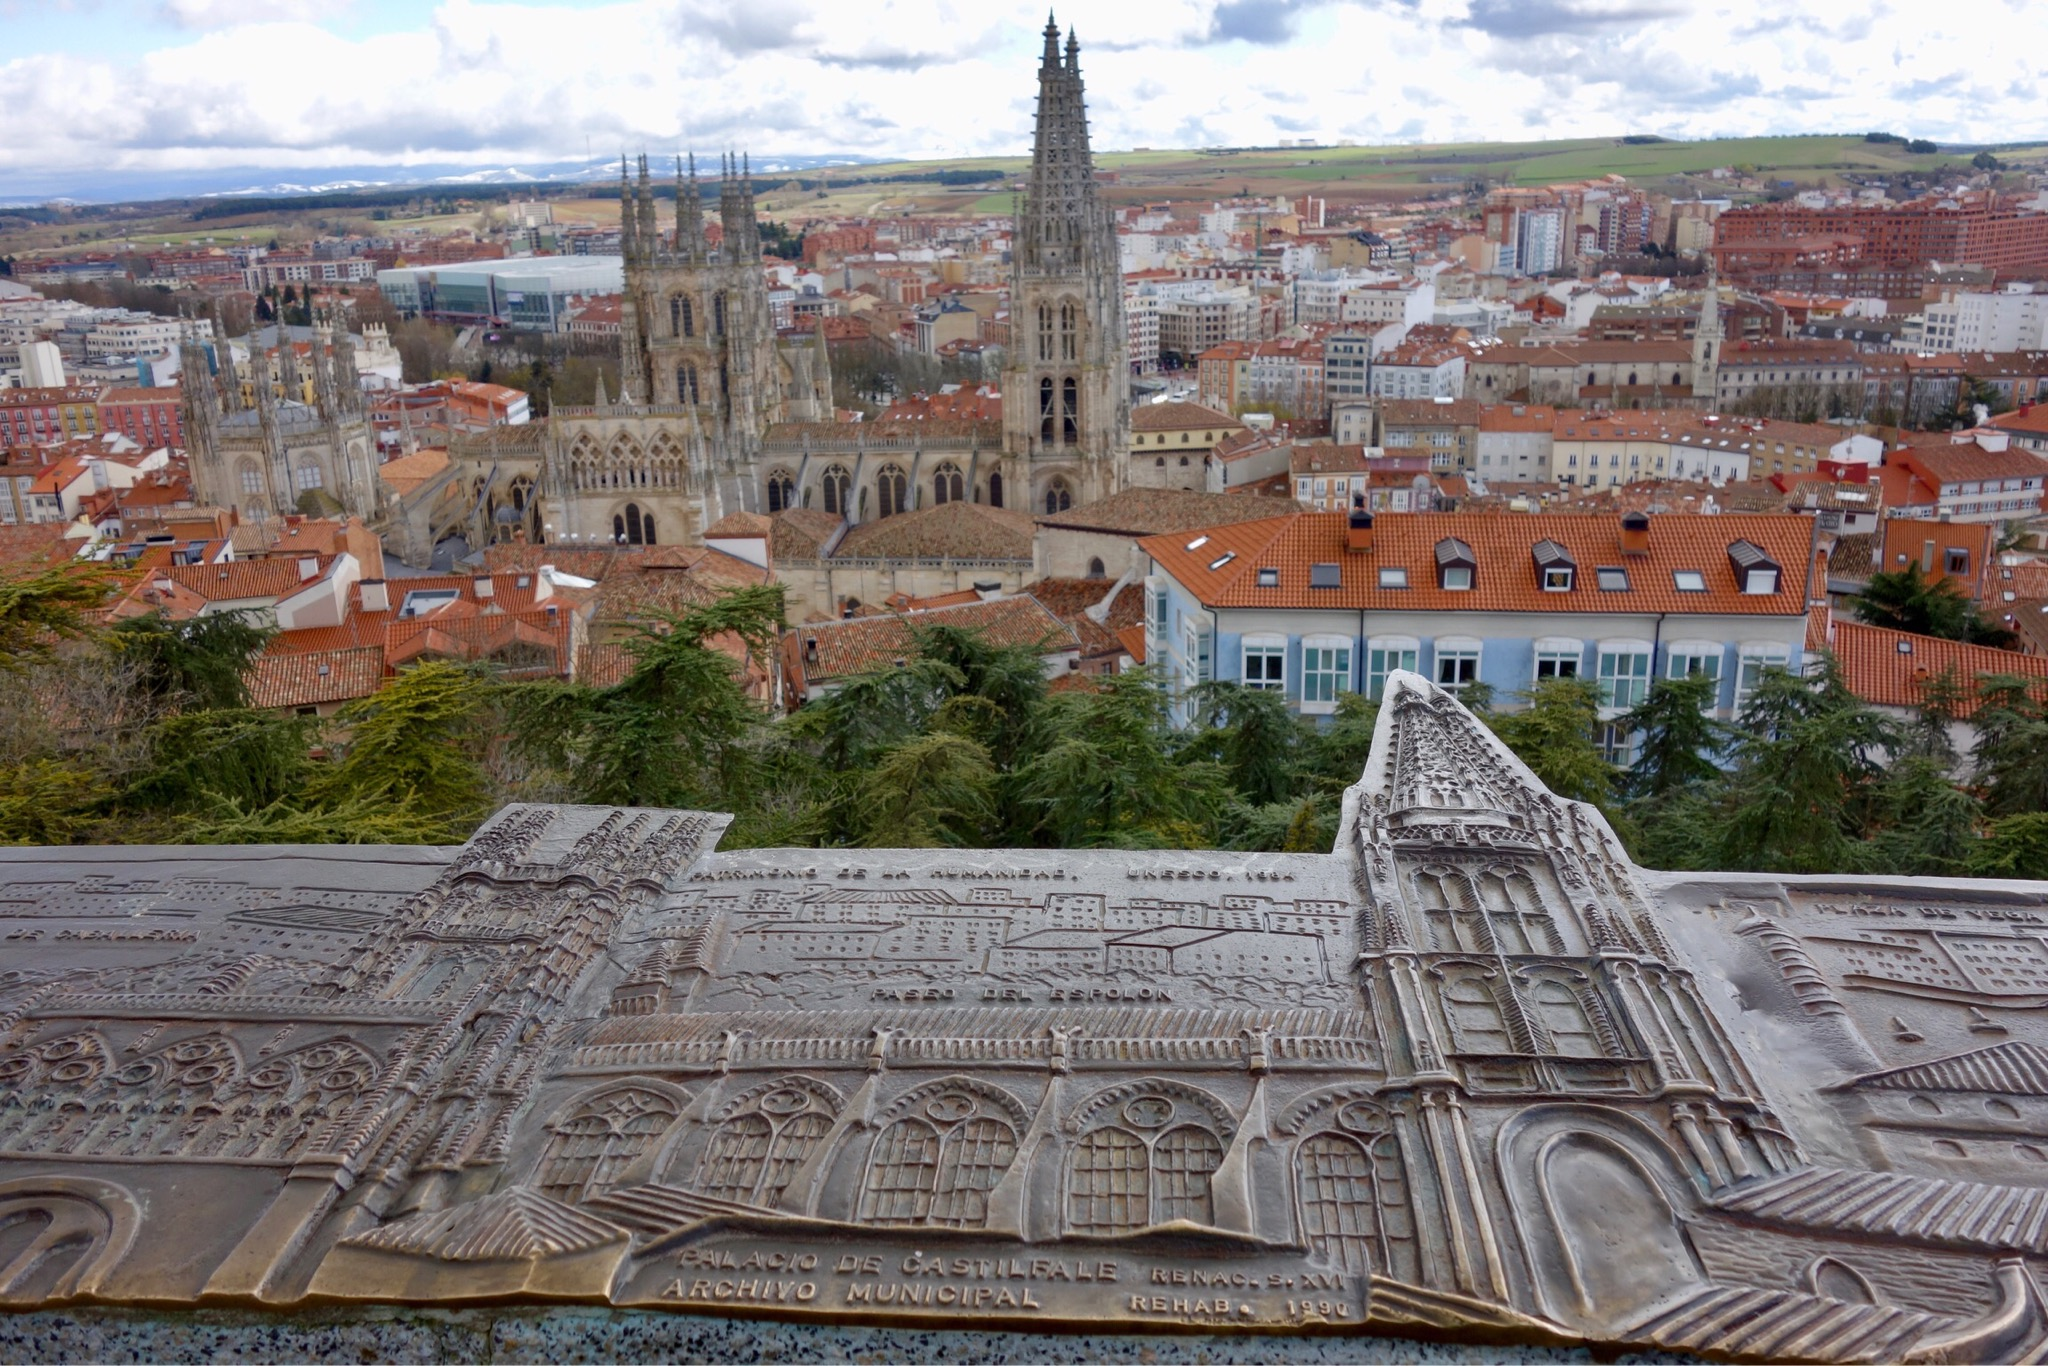 A view over Burgos city center, with the cathedral